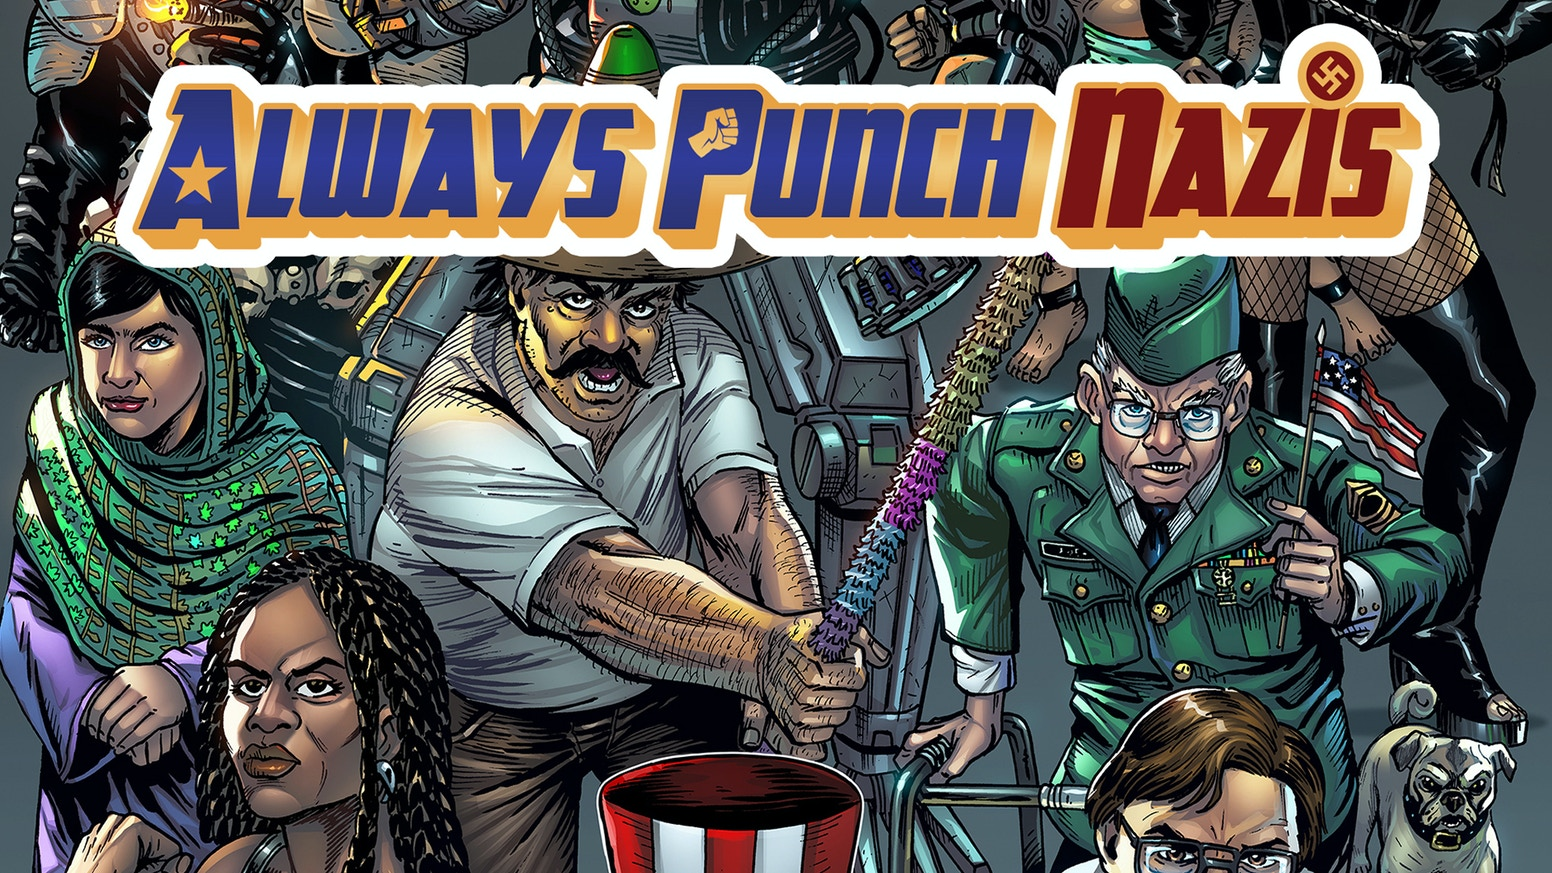 A 44-page, comic book anthology about our country's battle against racism. Join the fight with this satirical graphic novel.